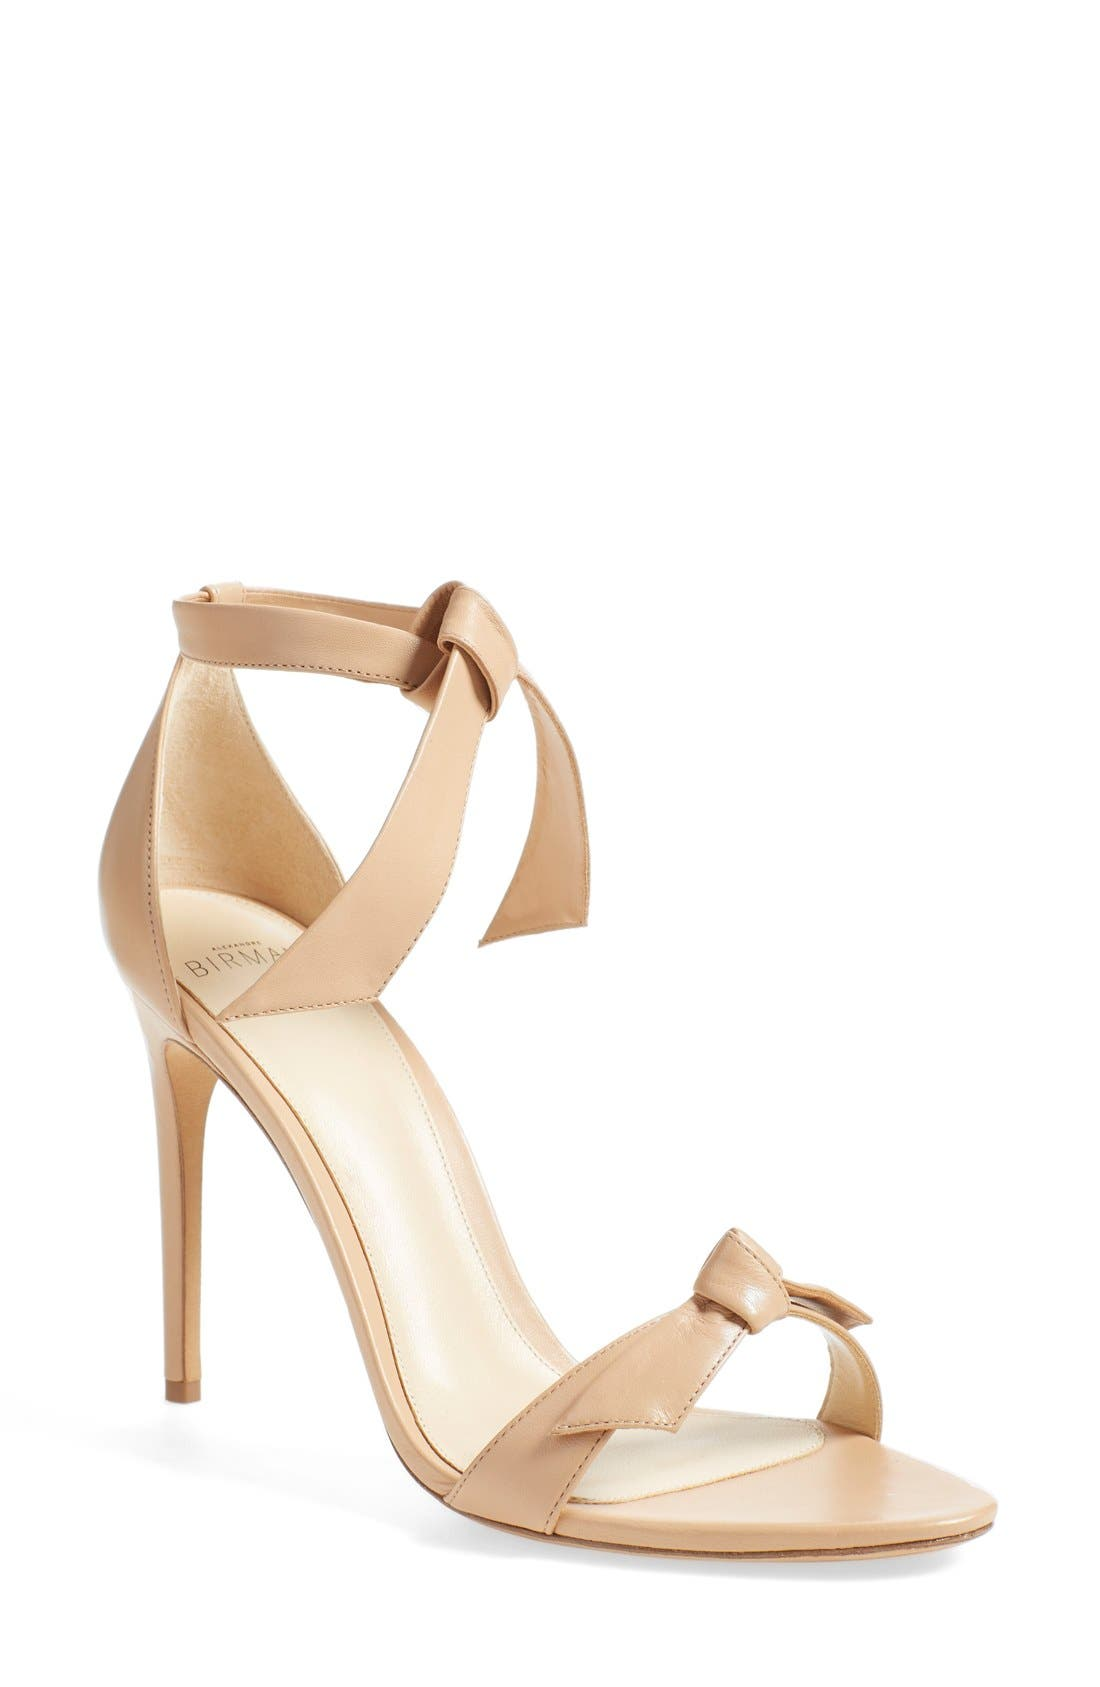 'Clarita' Ankle Tie Sandal,                             Main thumbnail 1, color,                             Nude Soft Leather